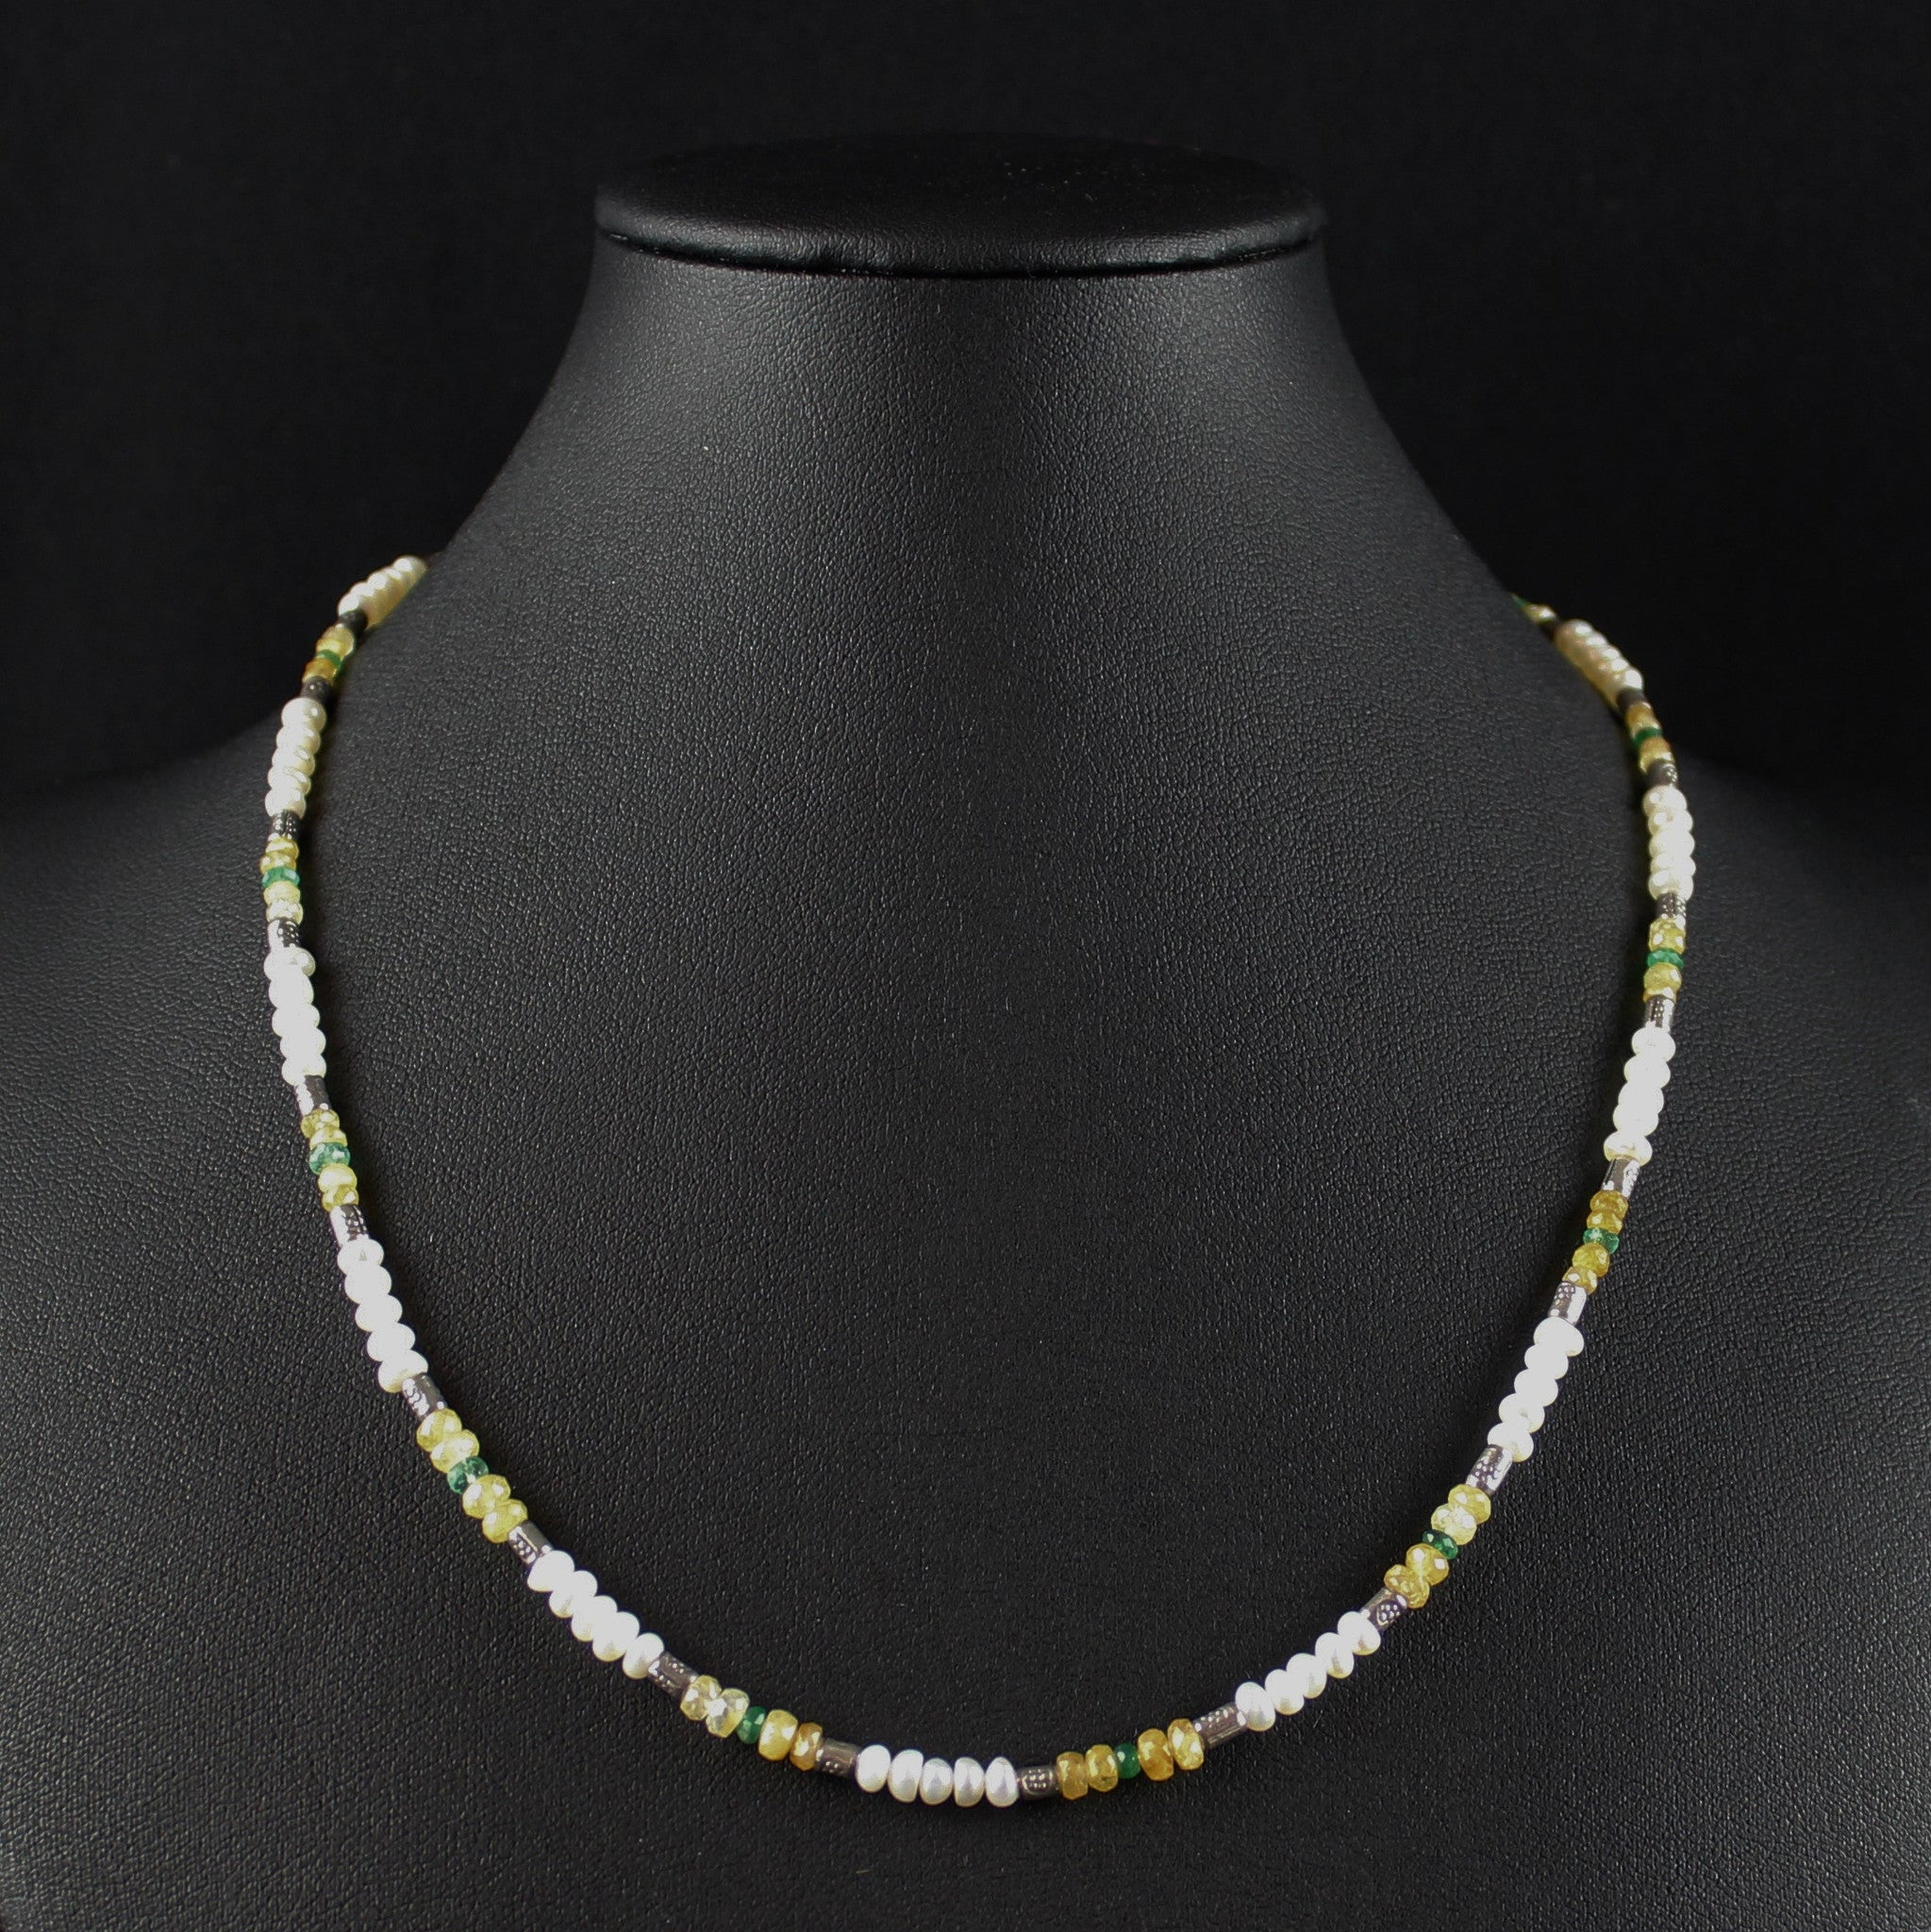 Susan M - Multi Gemstone & Pearl Necklace